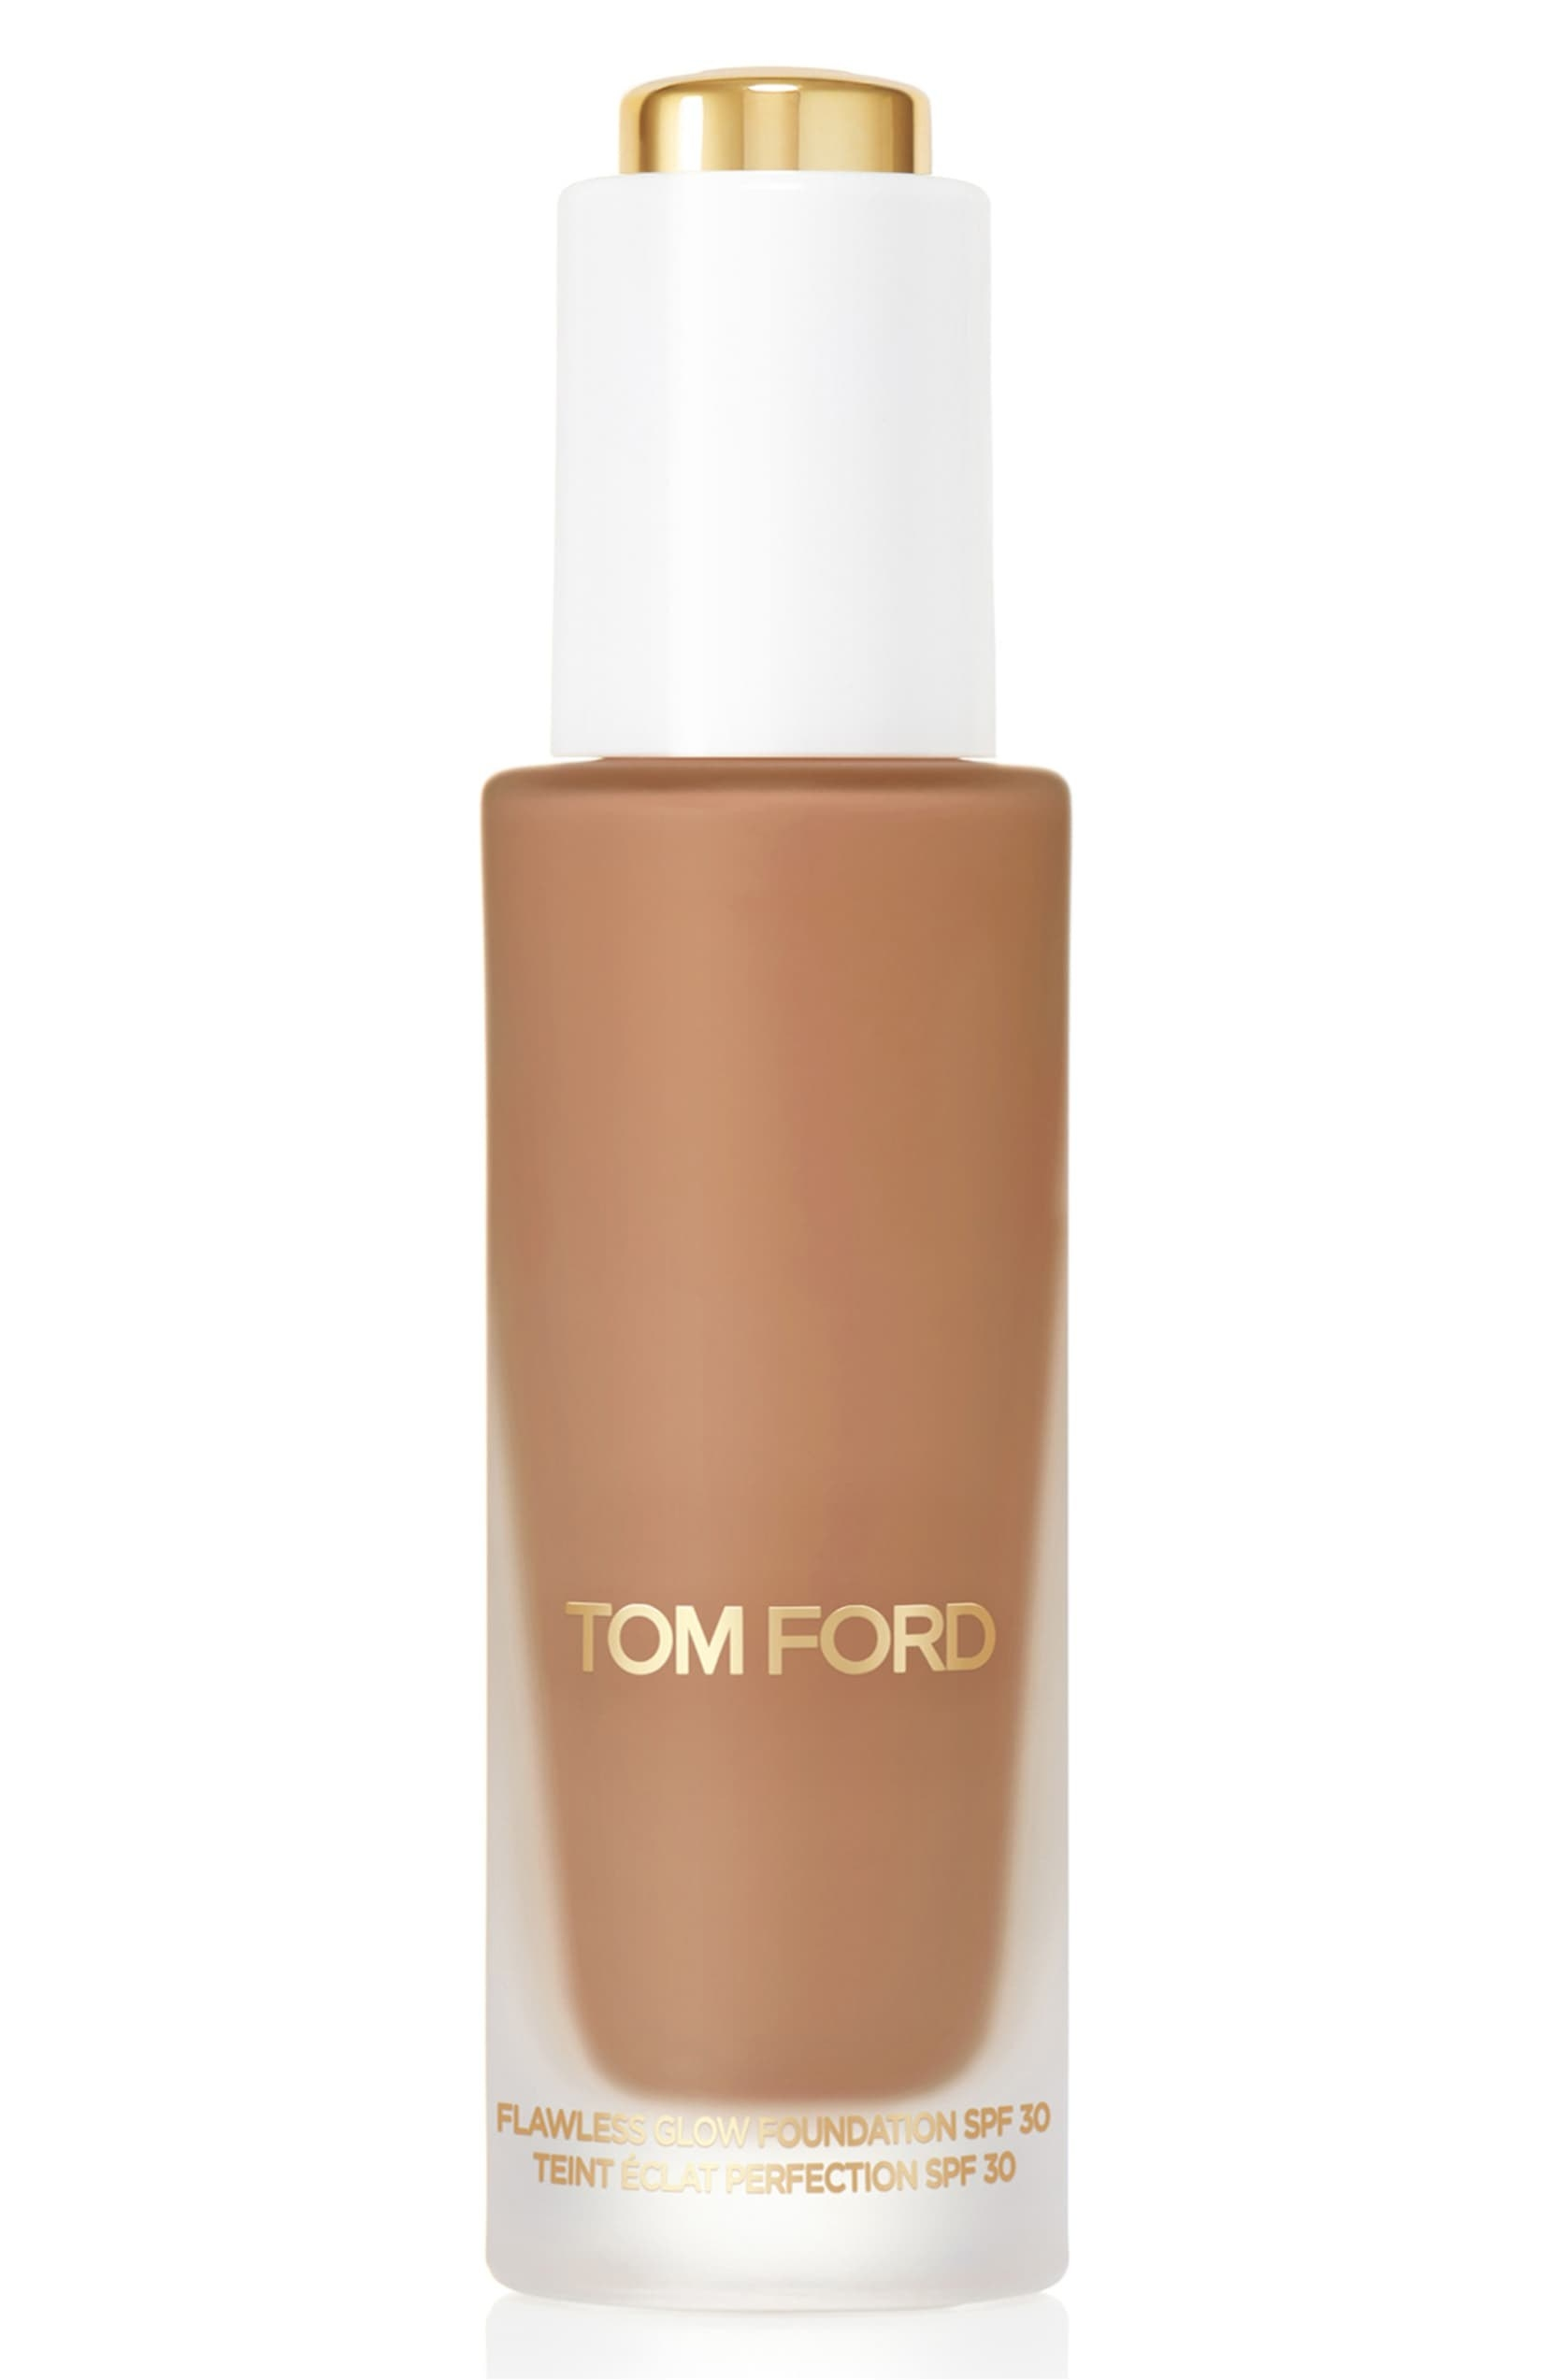 Tom Ford foundation container upright